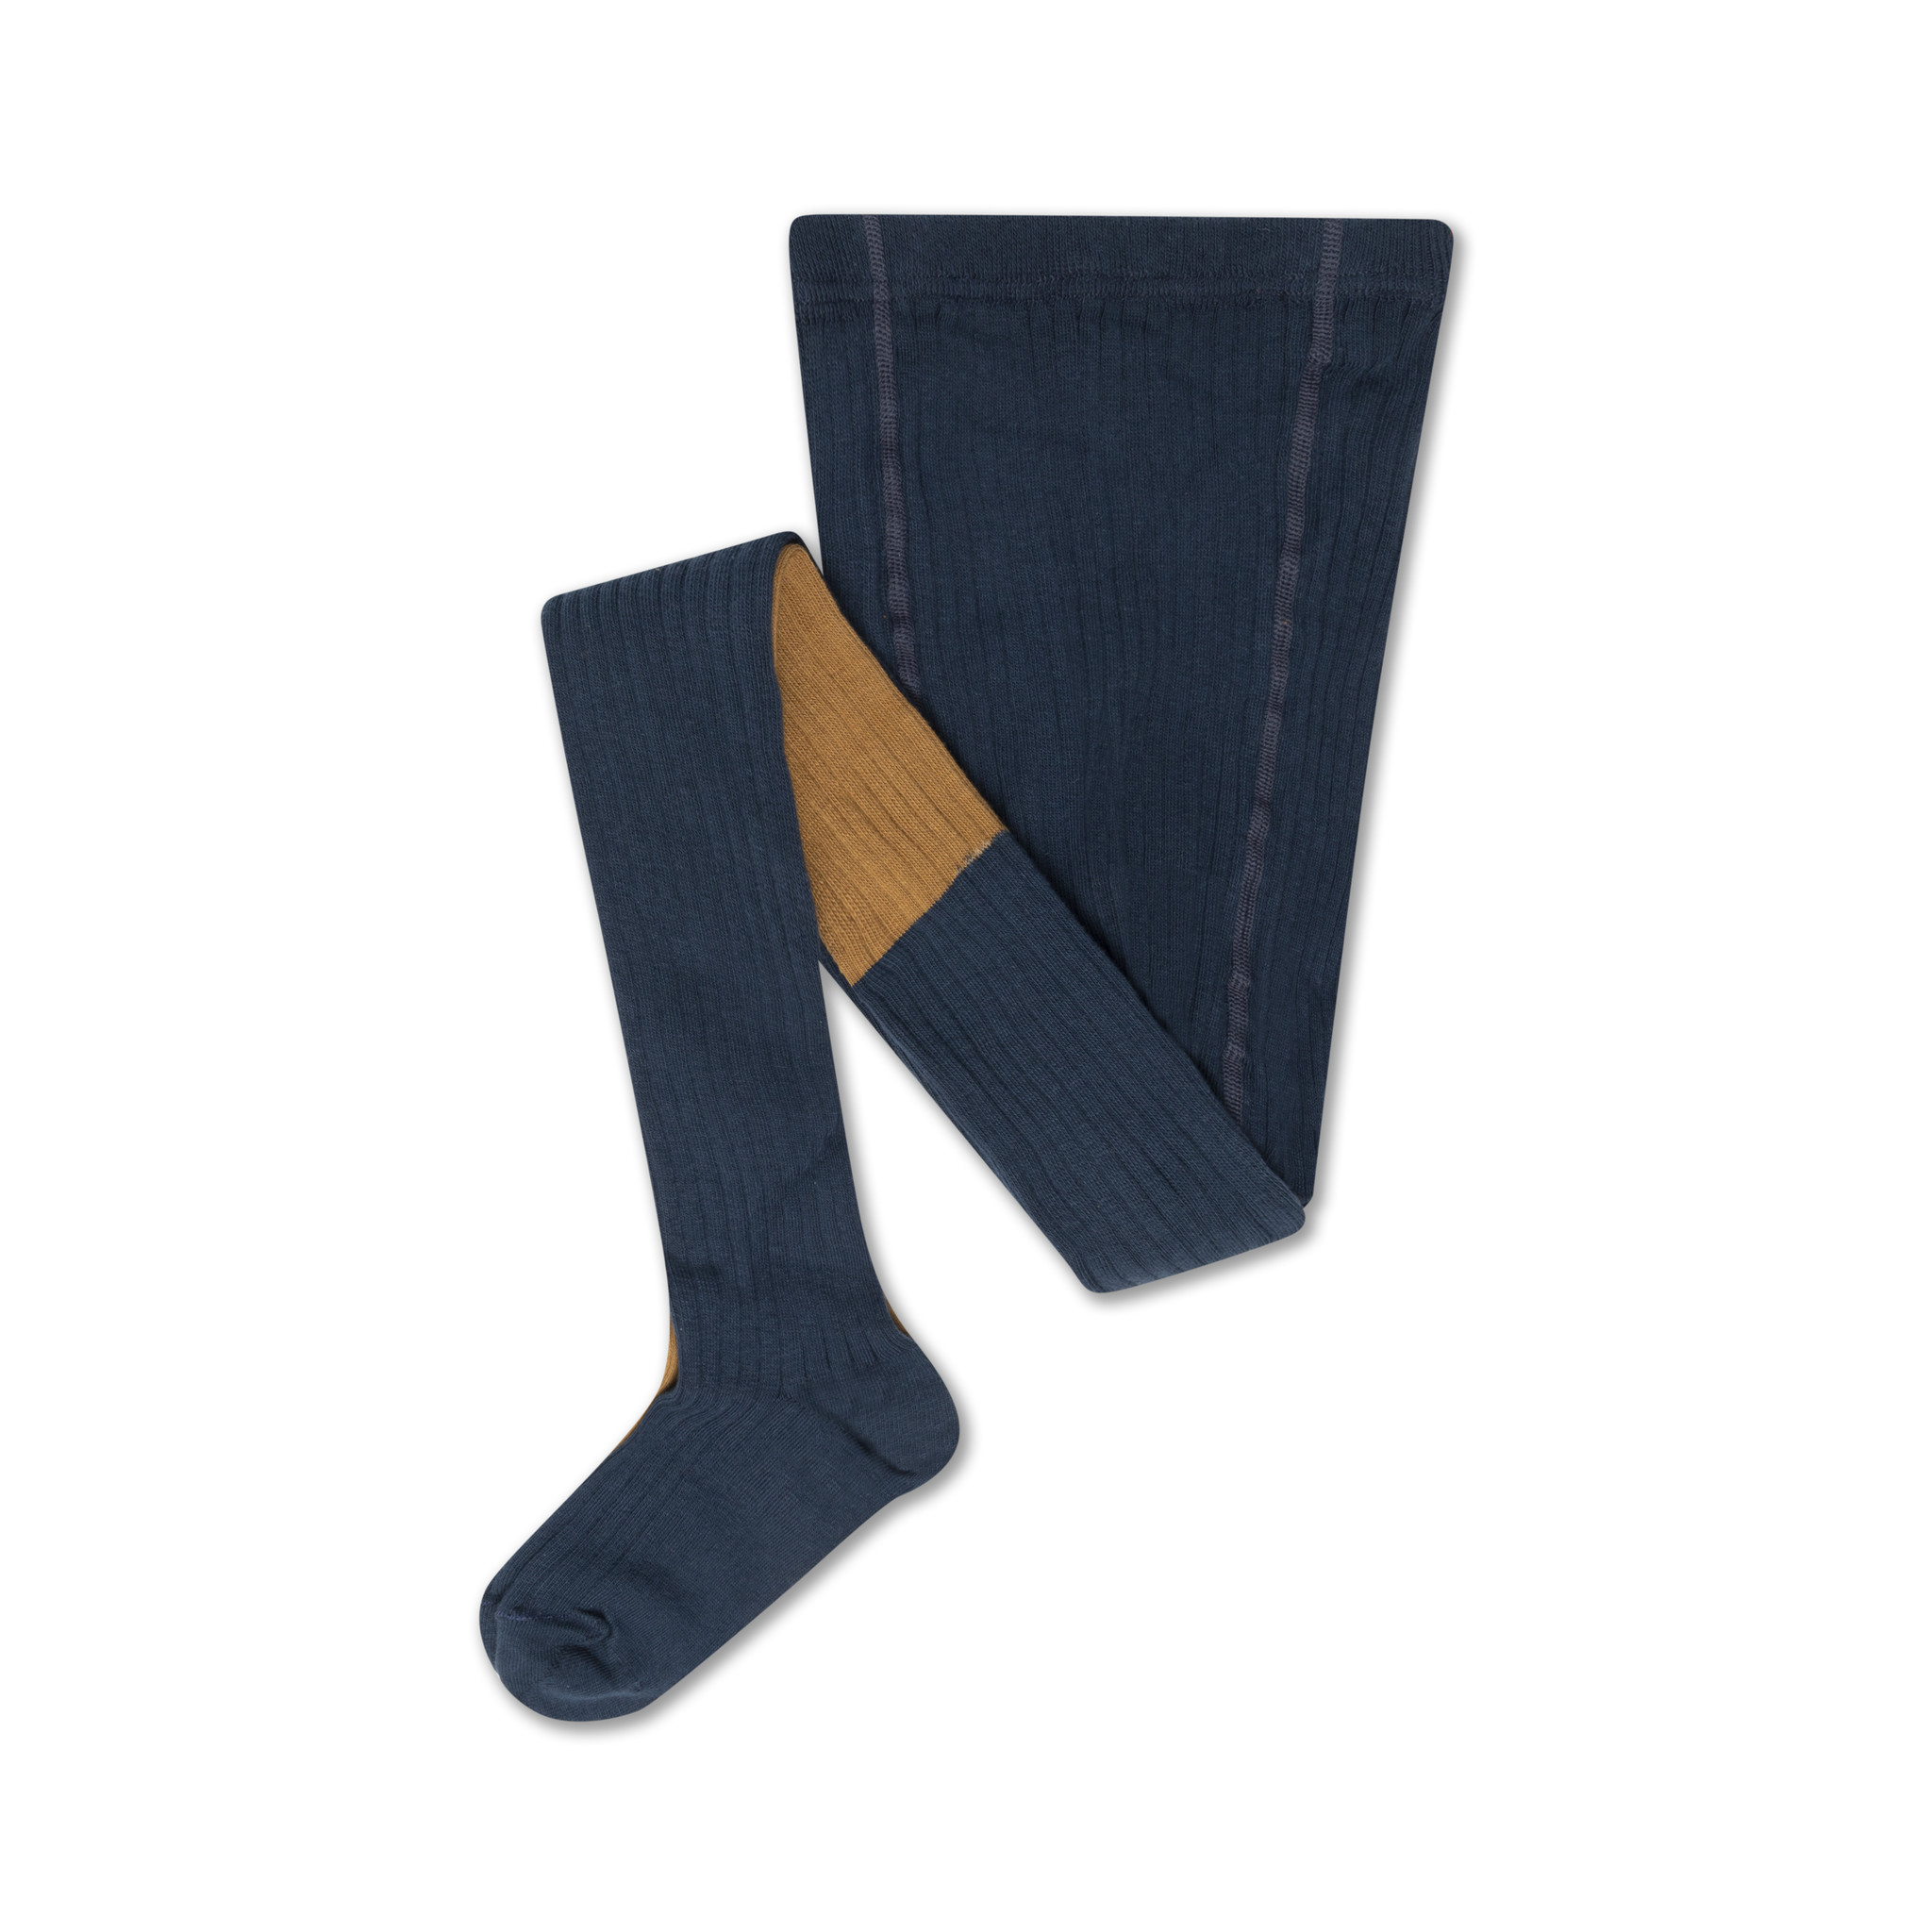 Tights - Navy Blue / Golden-1